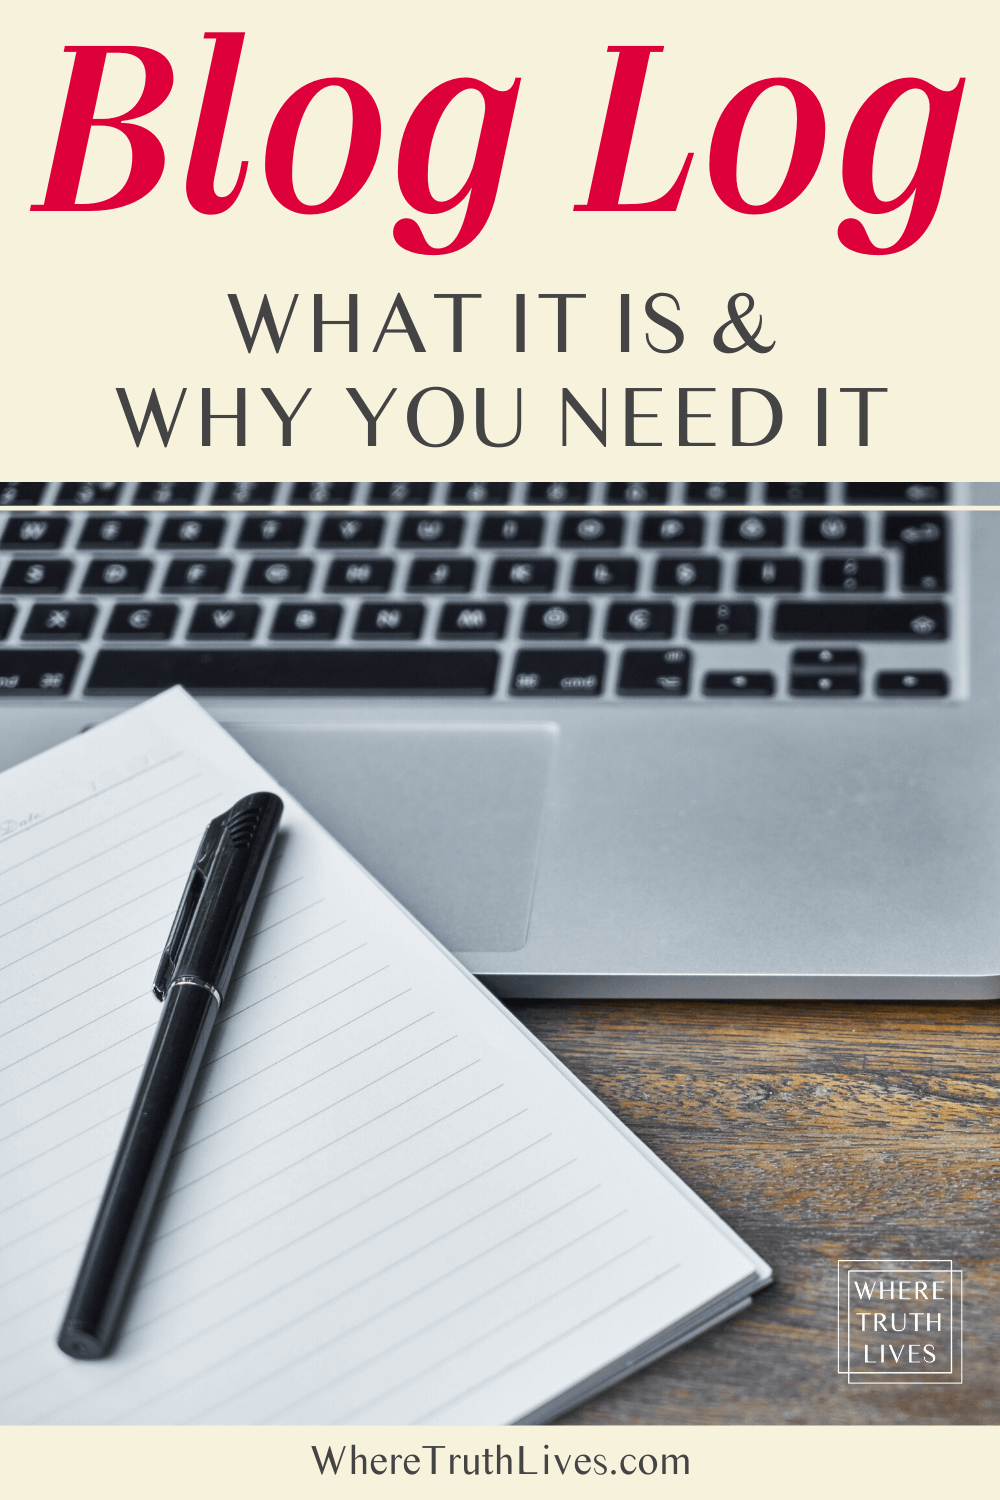 Blog Log - What It Is and Why You Need It